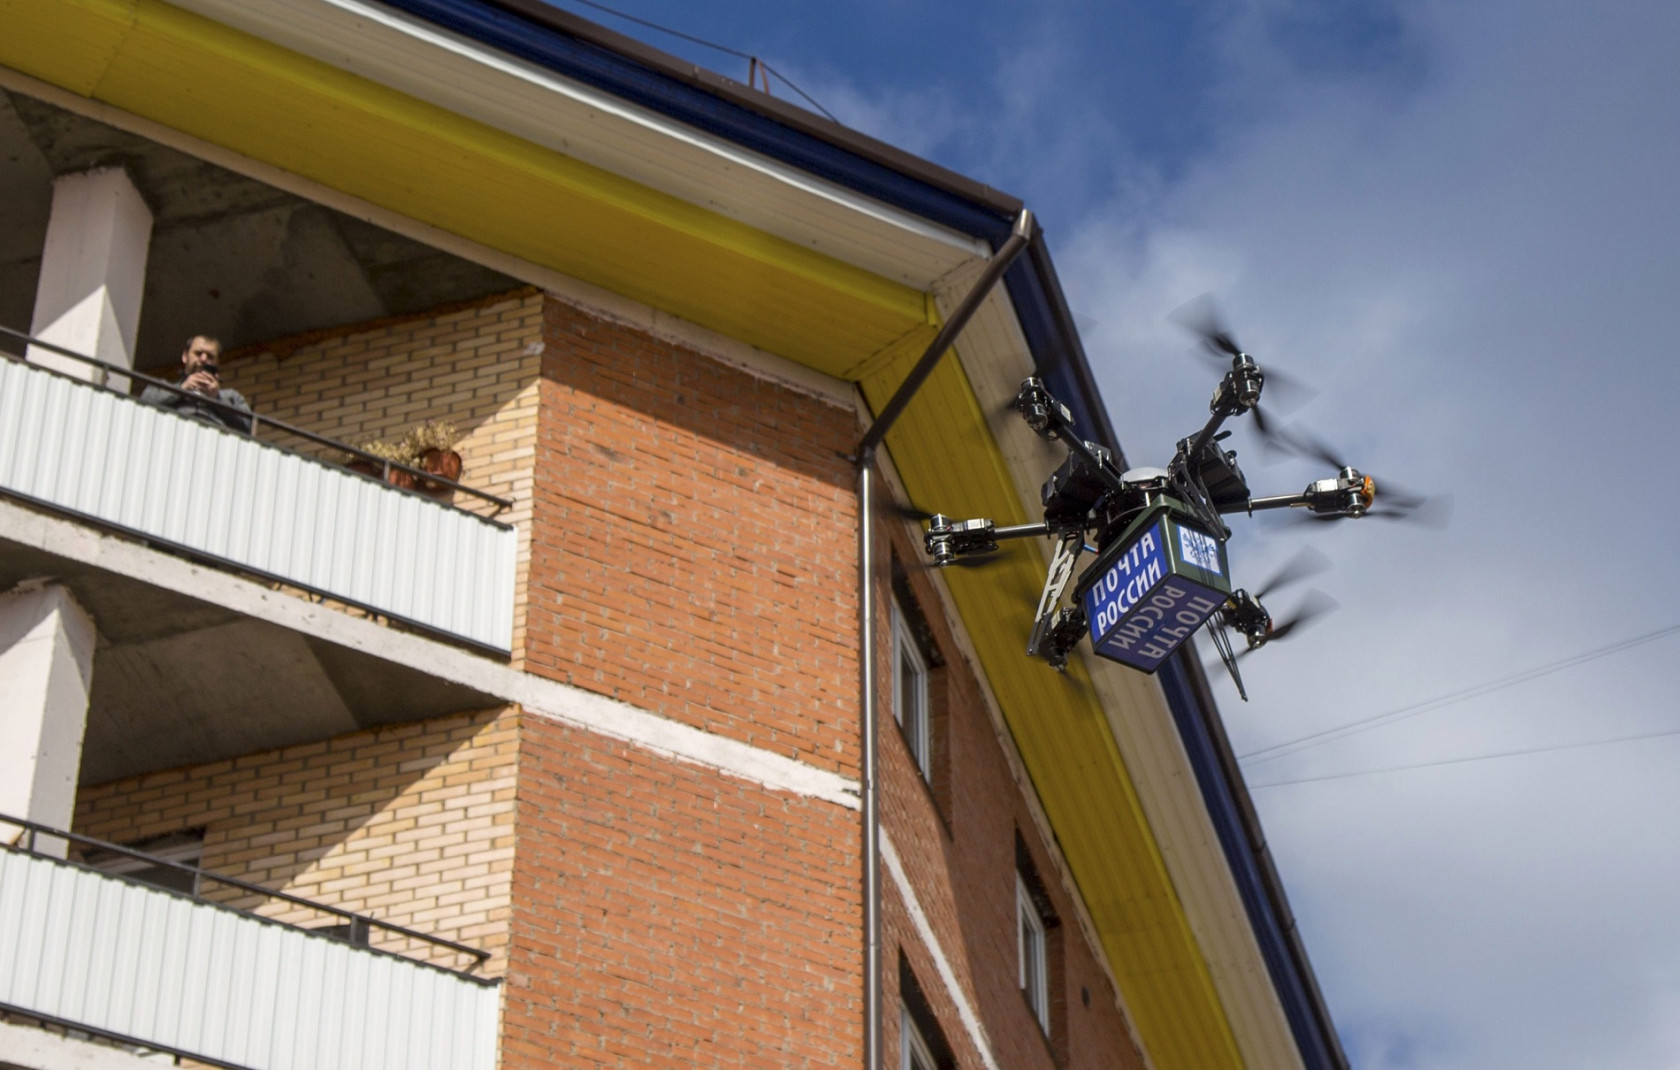 Watch: Russian delivery drone smashes into building during maiden flight